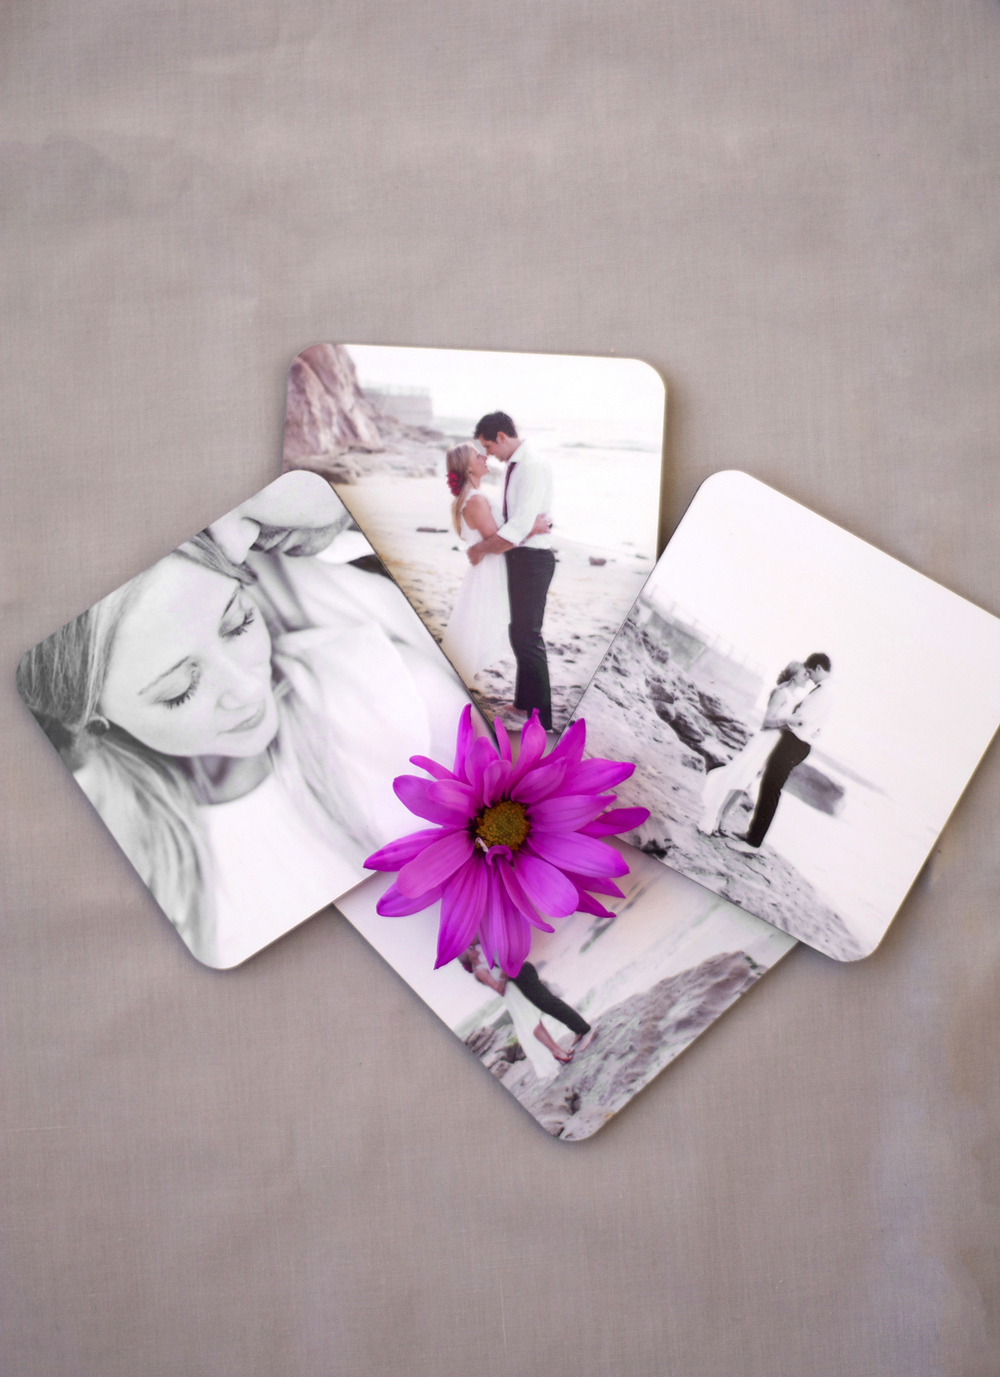 Wedding Gift Engraving Ideas Suggestions : The coasters also can double as display photos to scatter around the ...